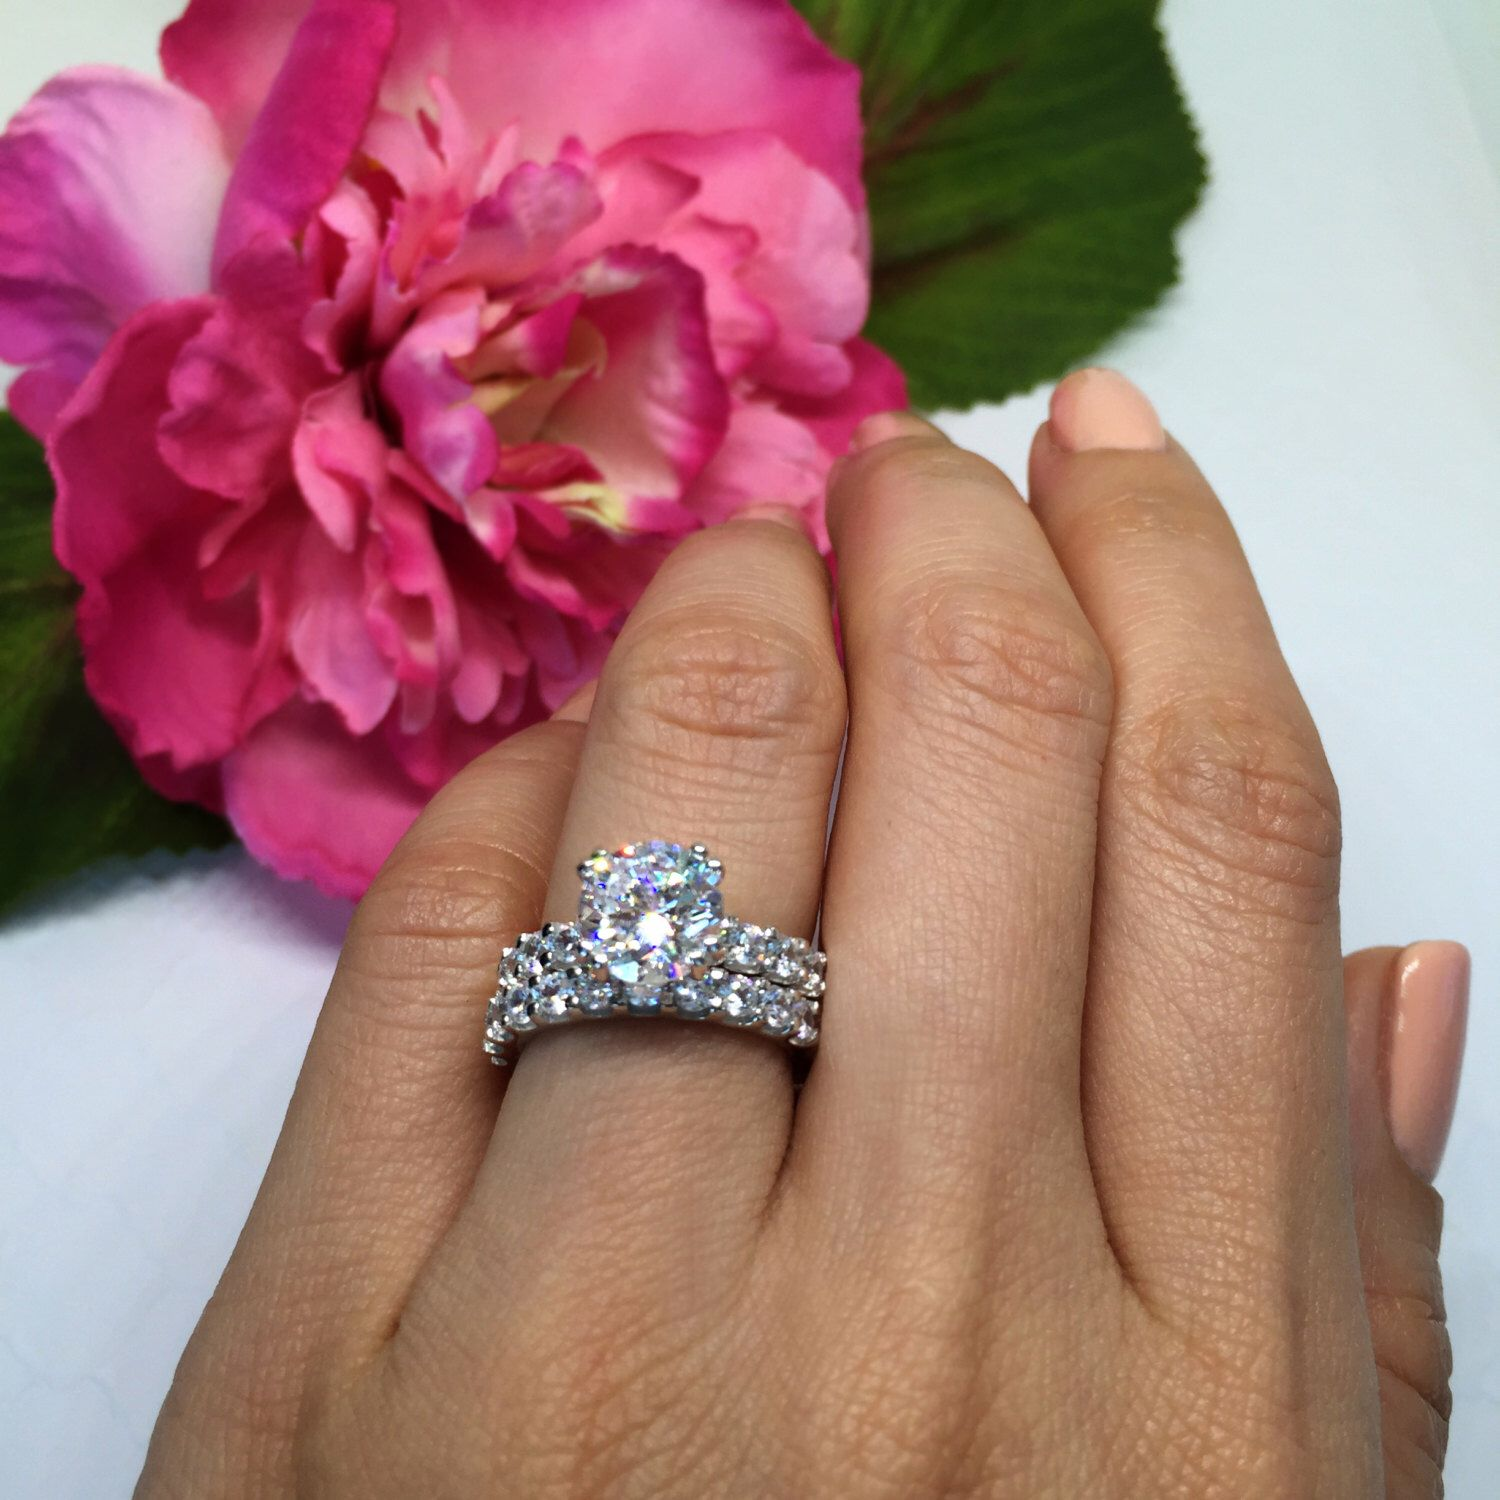 engagement diamond center full solitaire rings ctw pin simulant set eternity stone ring ct wedding